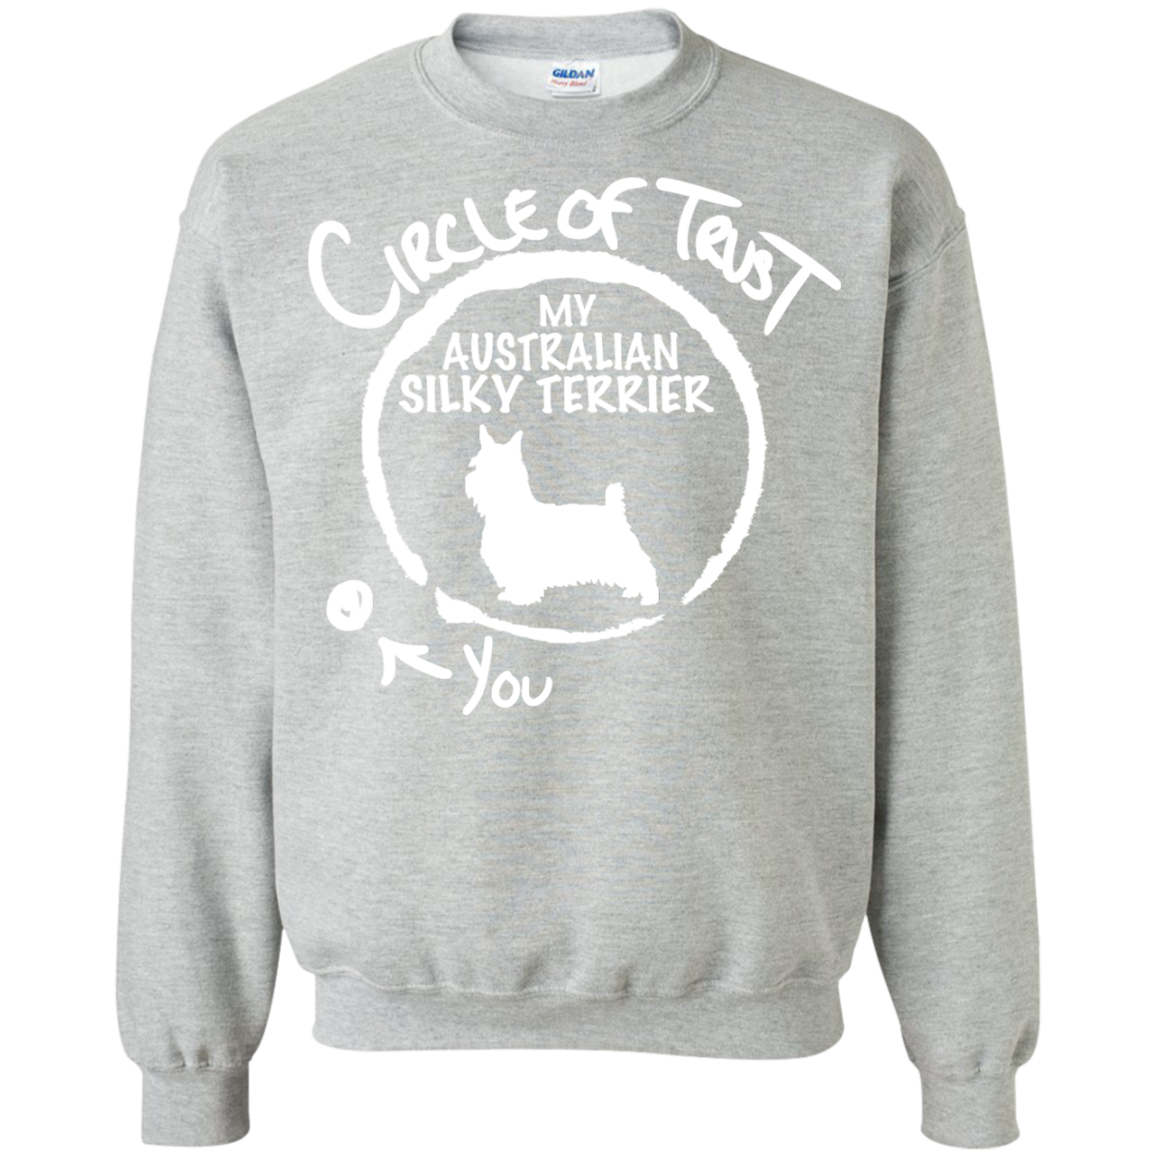 Circle Of Trust My Australian Silky Terrier You Sweatshirts